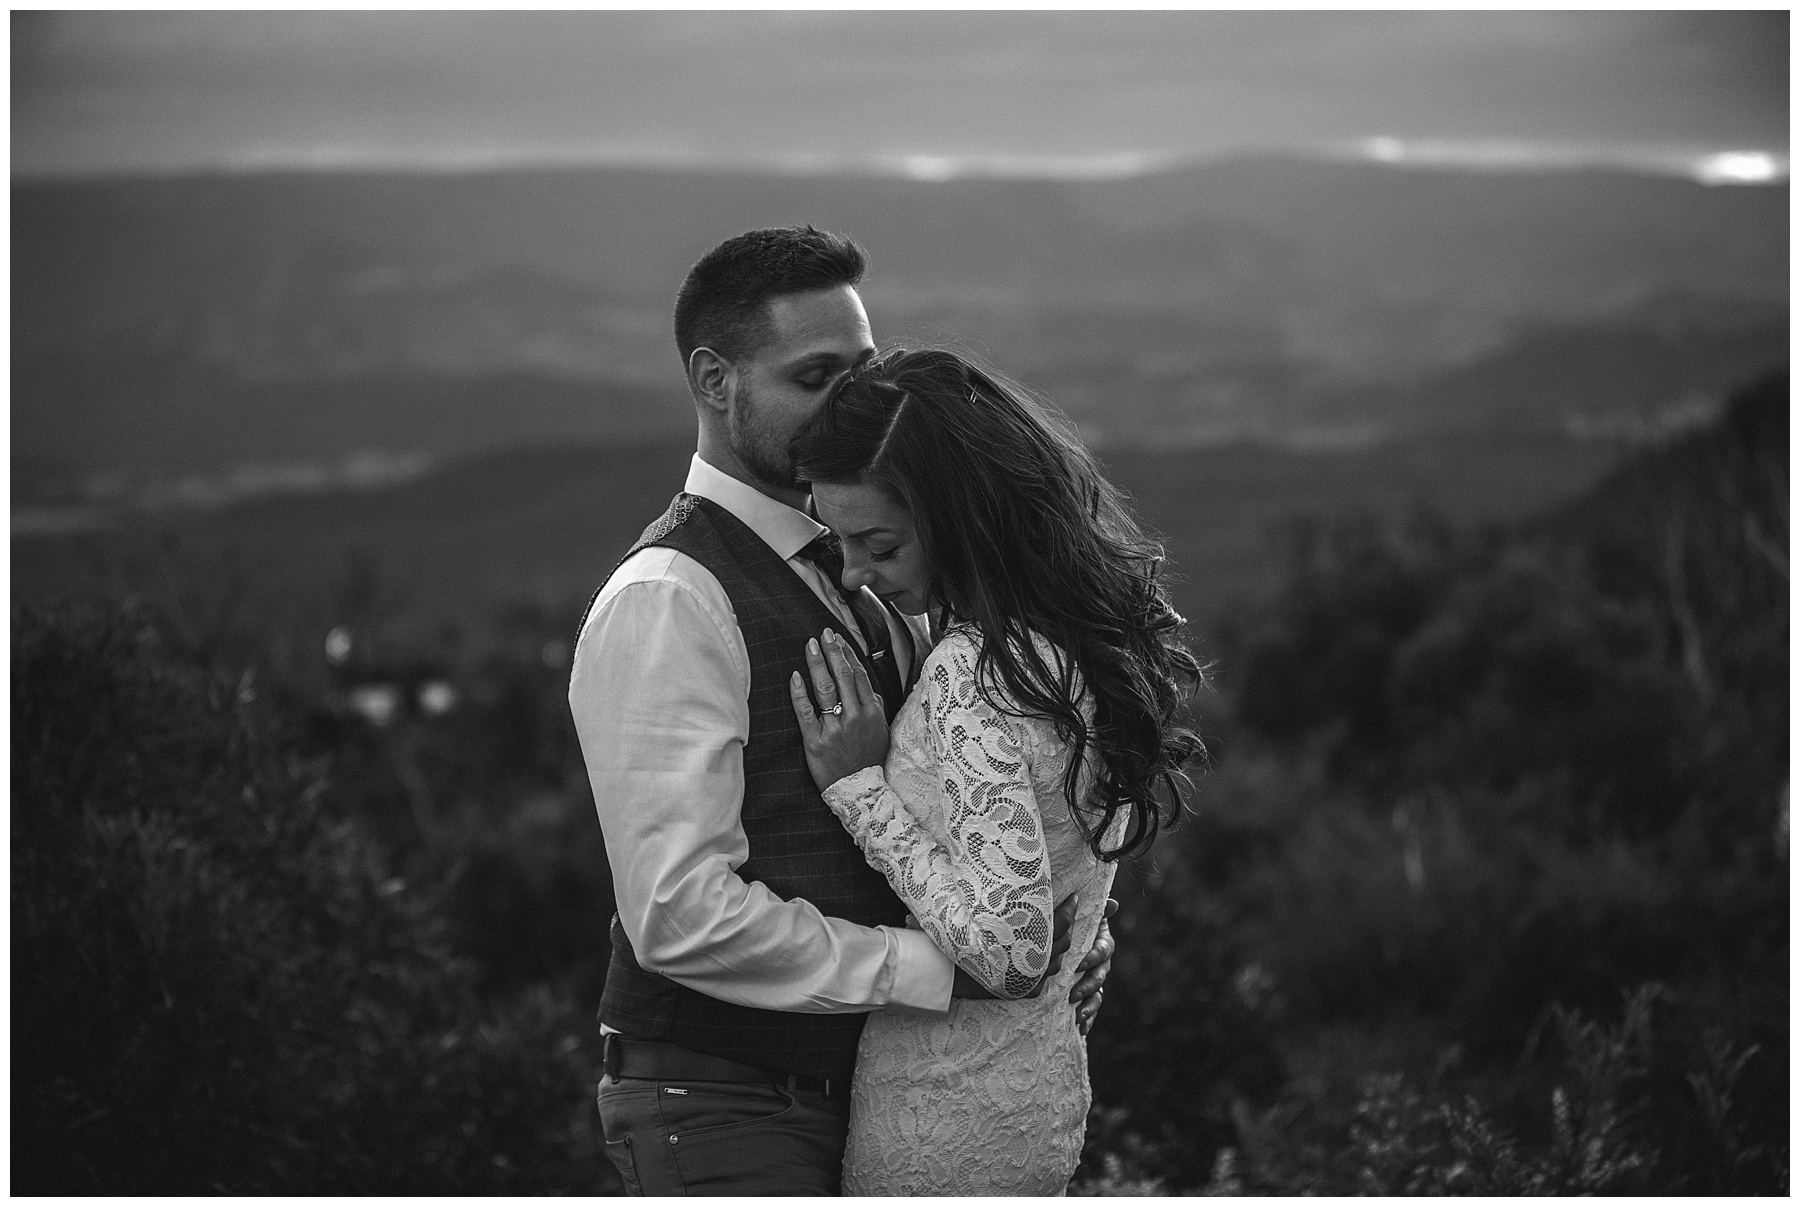 Black and white elopement photography by de lumière photography